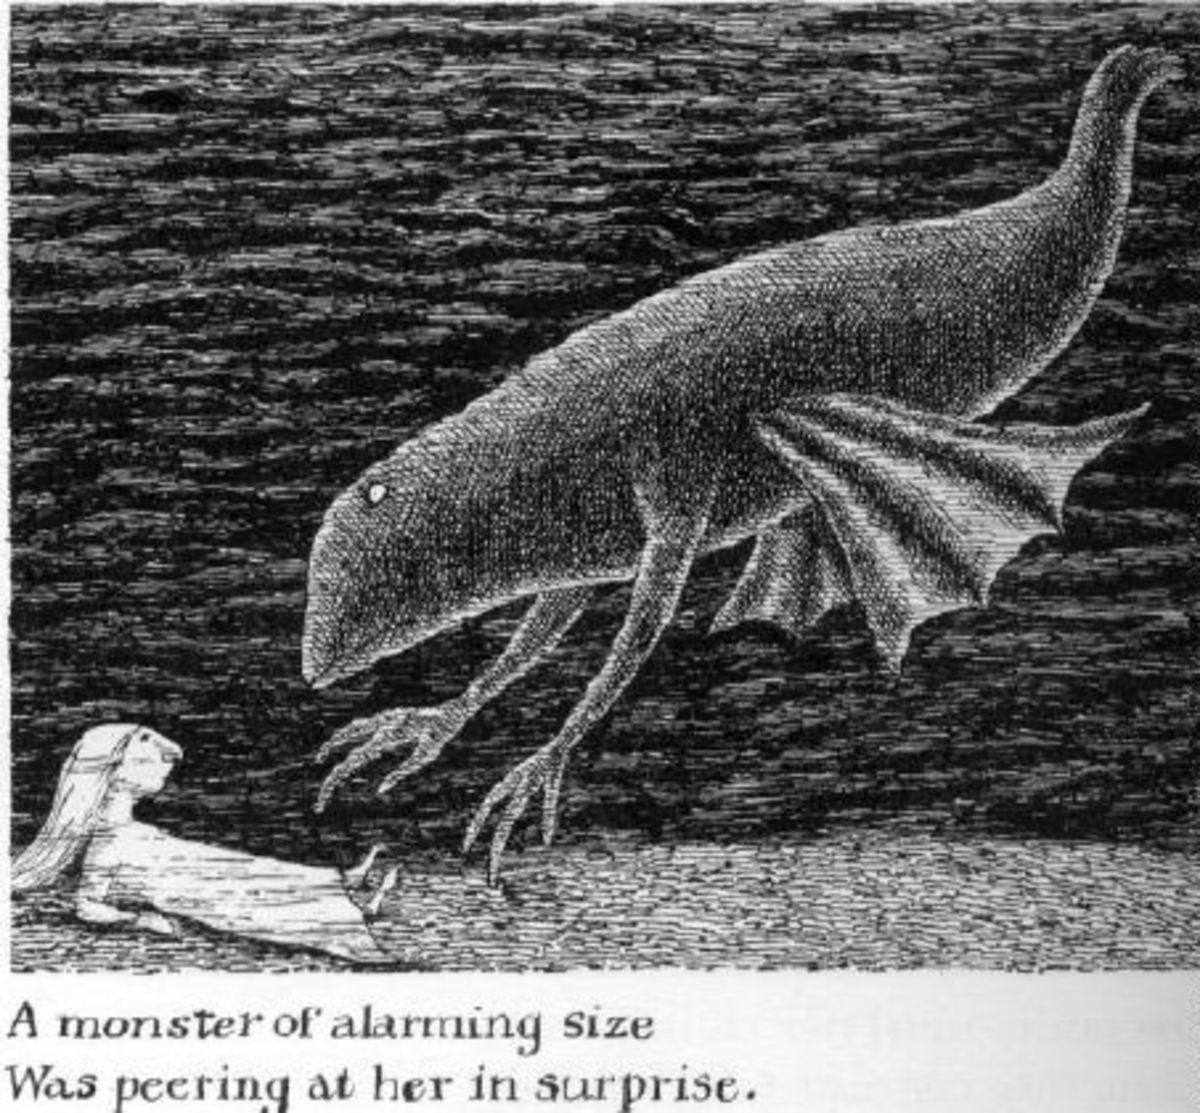 An Edward Gorey illustration - delving into whimsy.